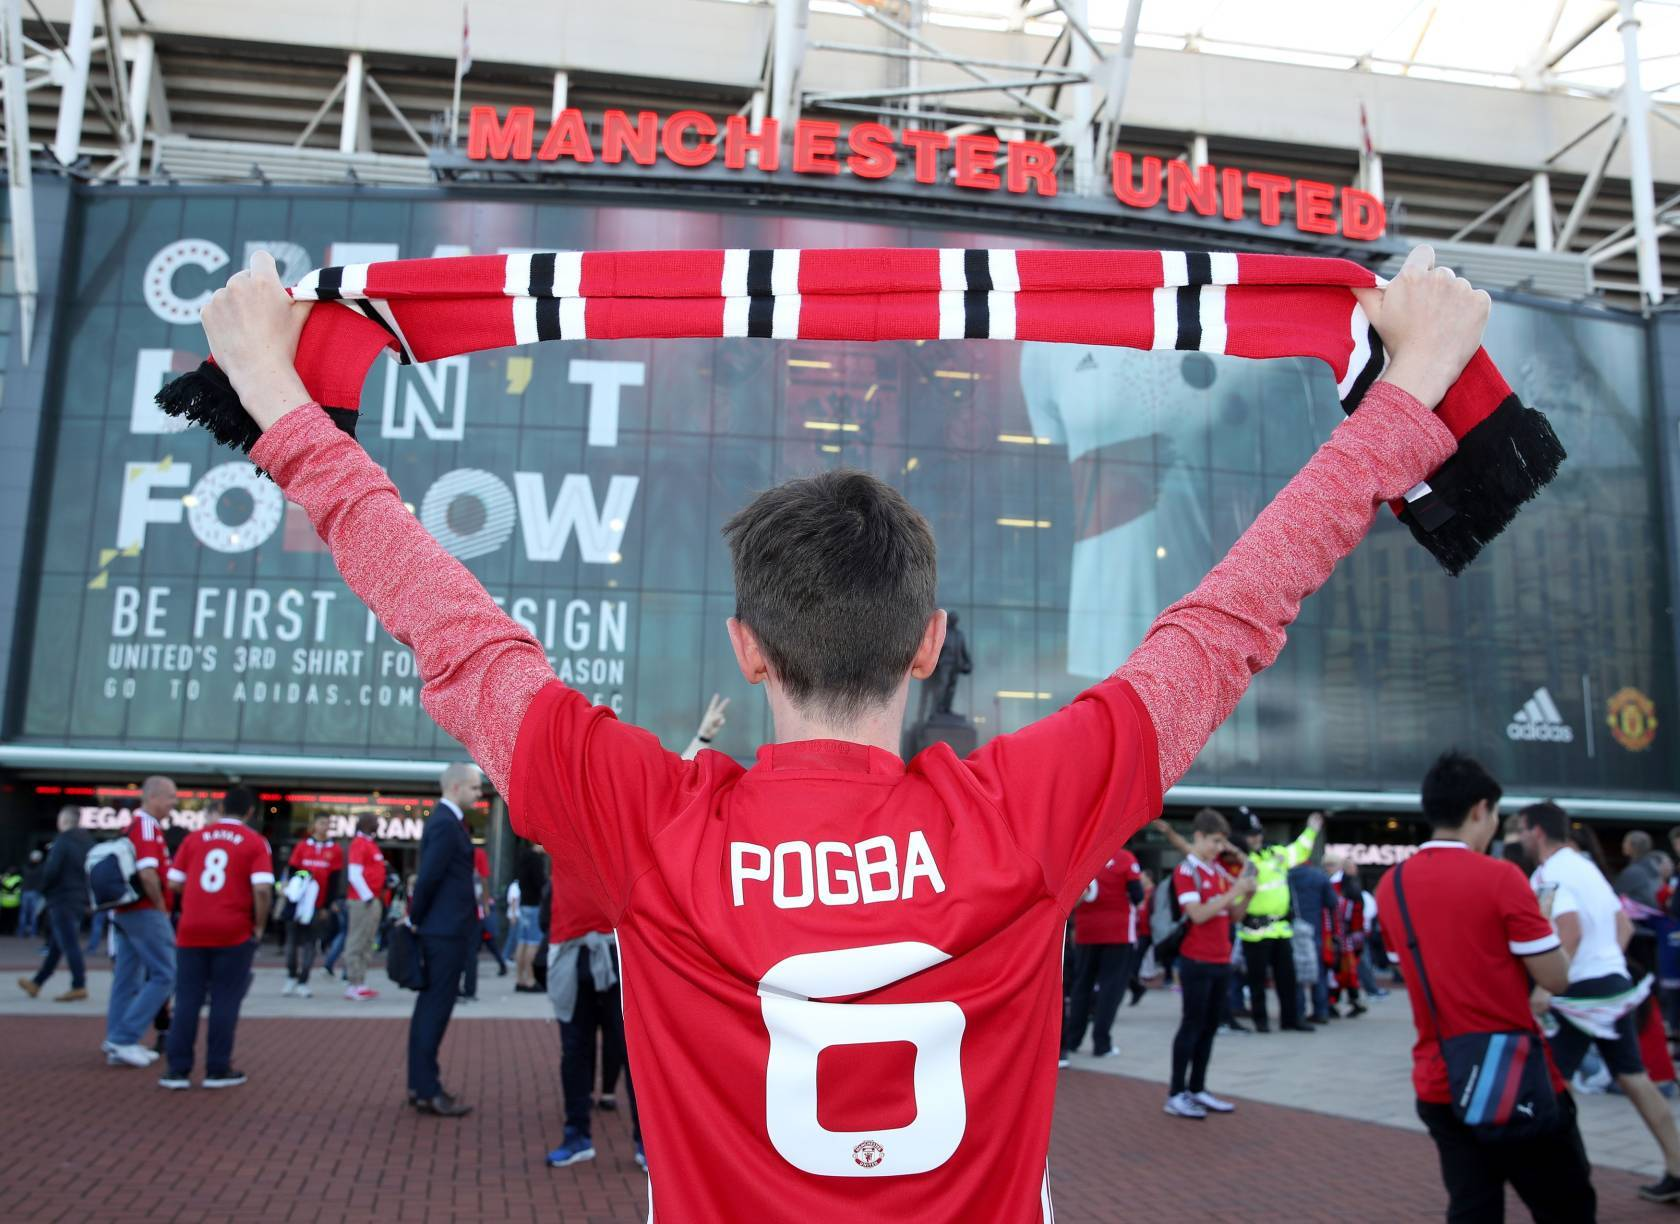 A Manchester United fan celebrates Paul Pogba before the Premier League match at Old Trafford.